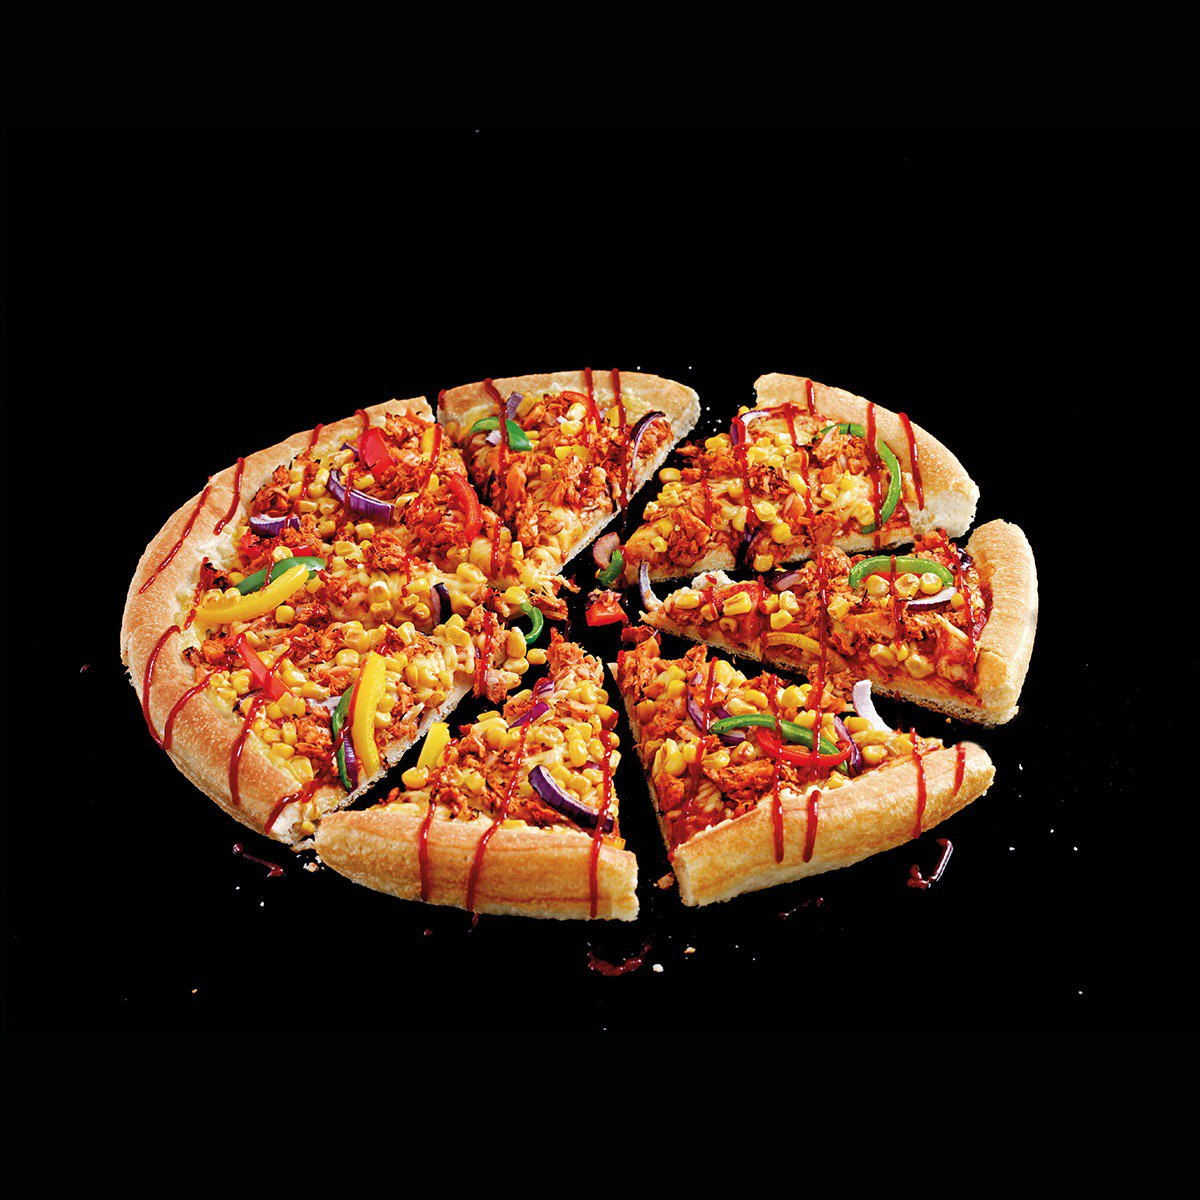 Pizza Hut Open Christmas Day.Pizza Hut Restaurants On Twitter Here S A Picture Of Our New Vegan